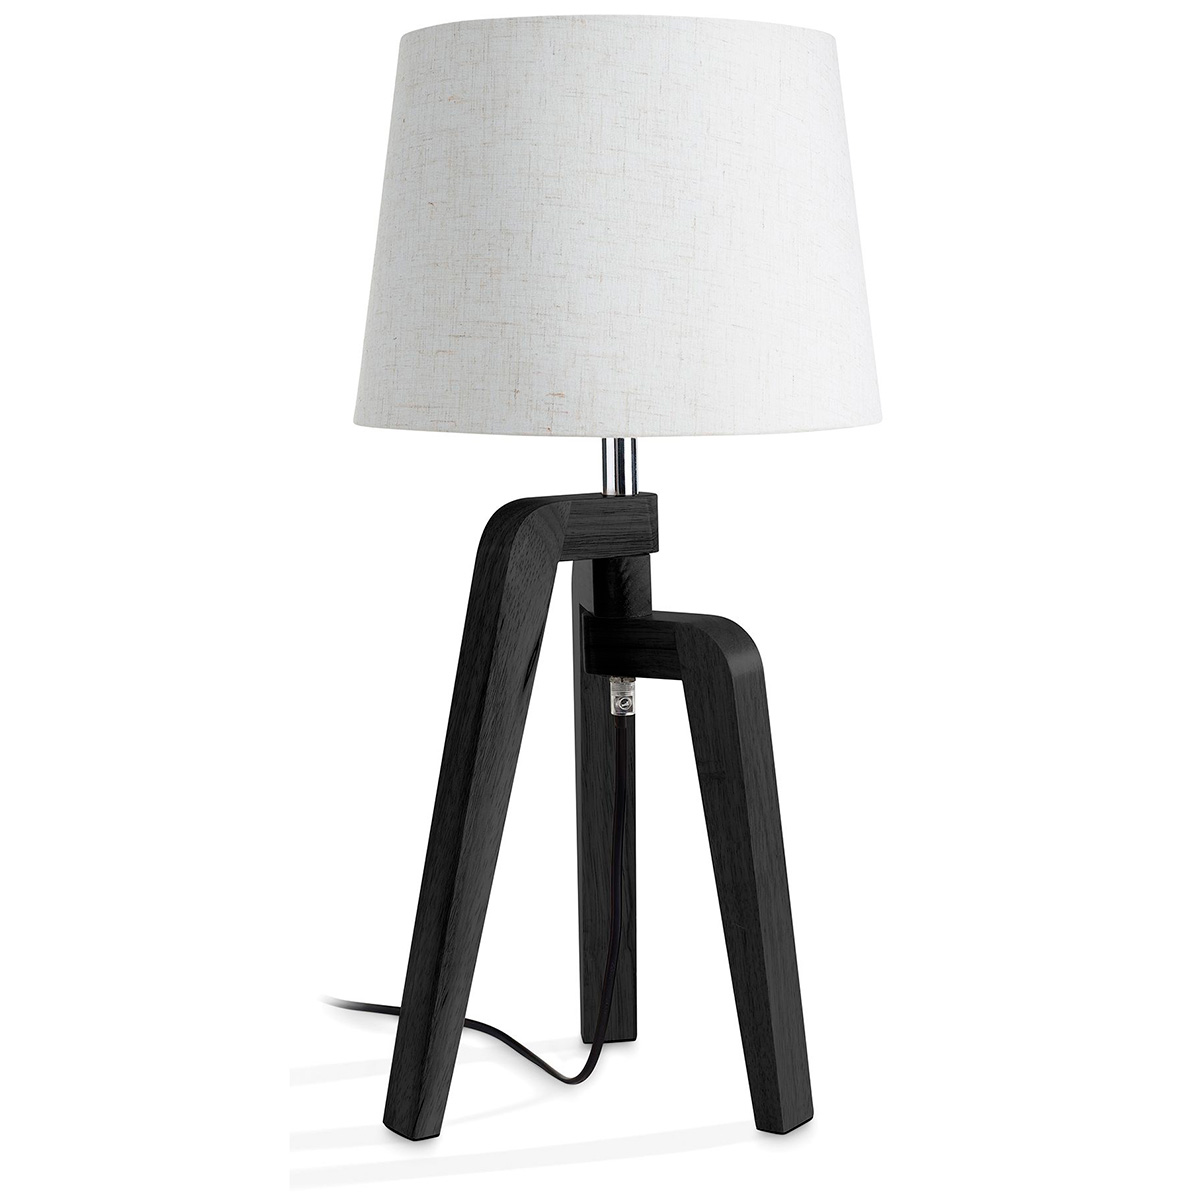 Image of   Philips myLiving bordlampe - Gilbert - Sort/hvid